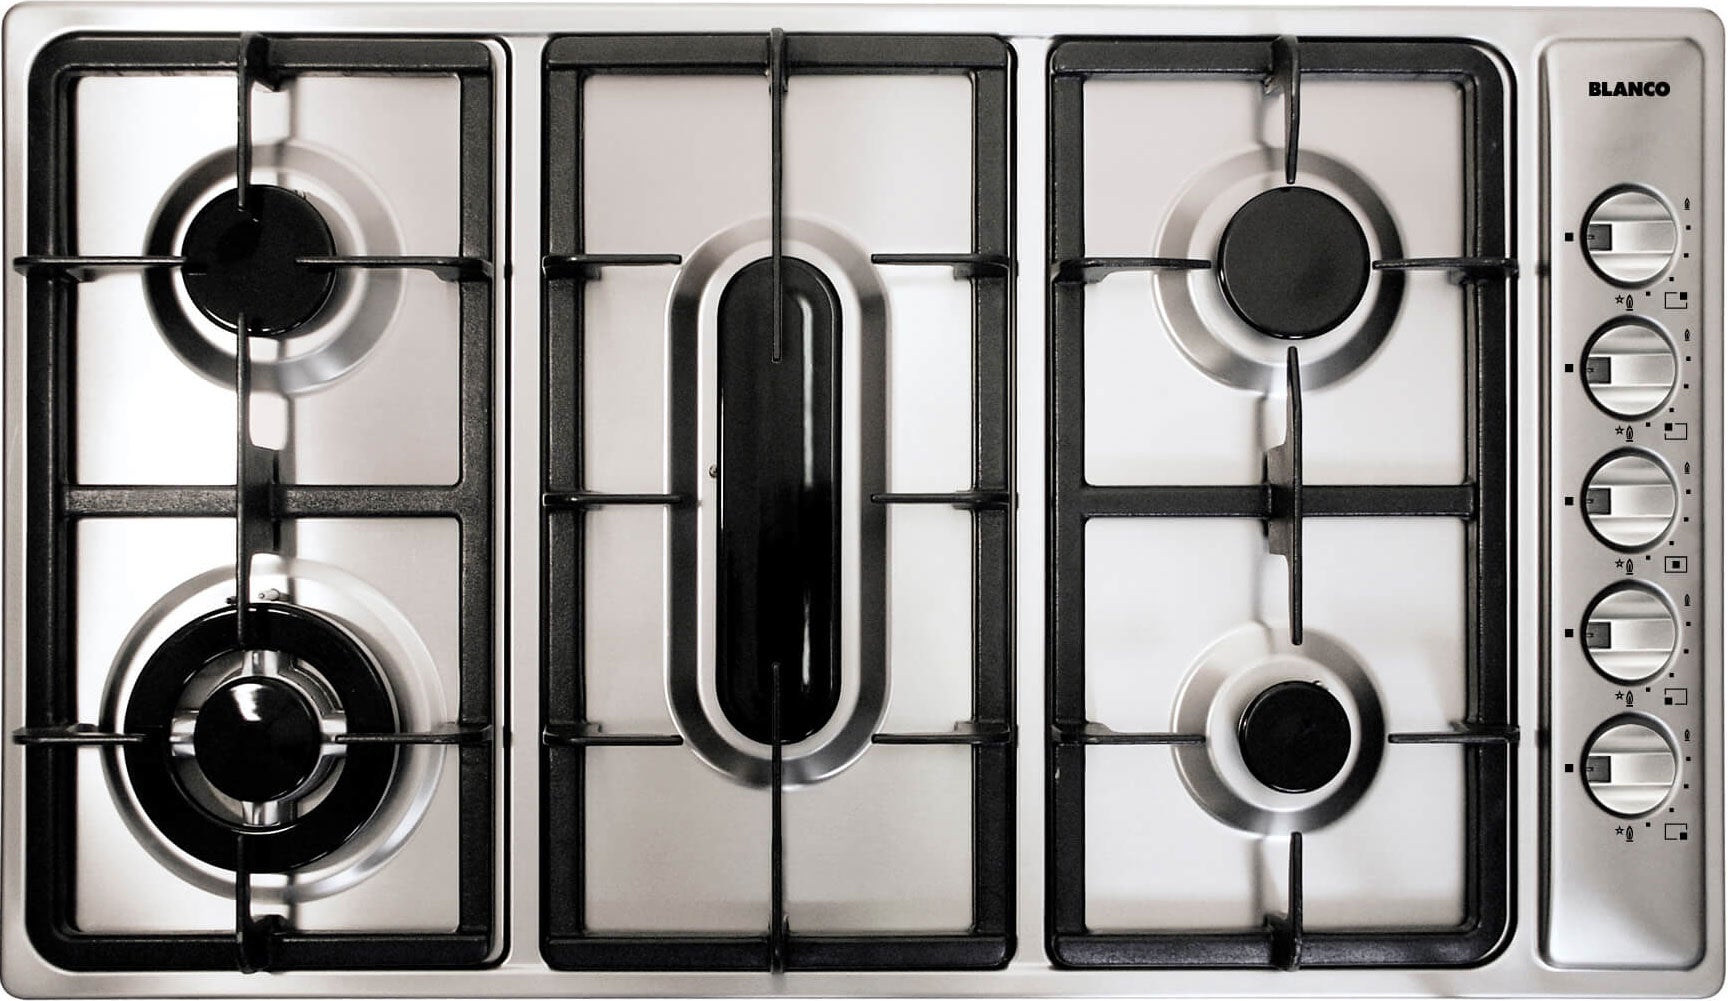 Blanco cooktop review